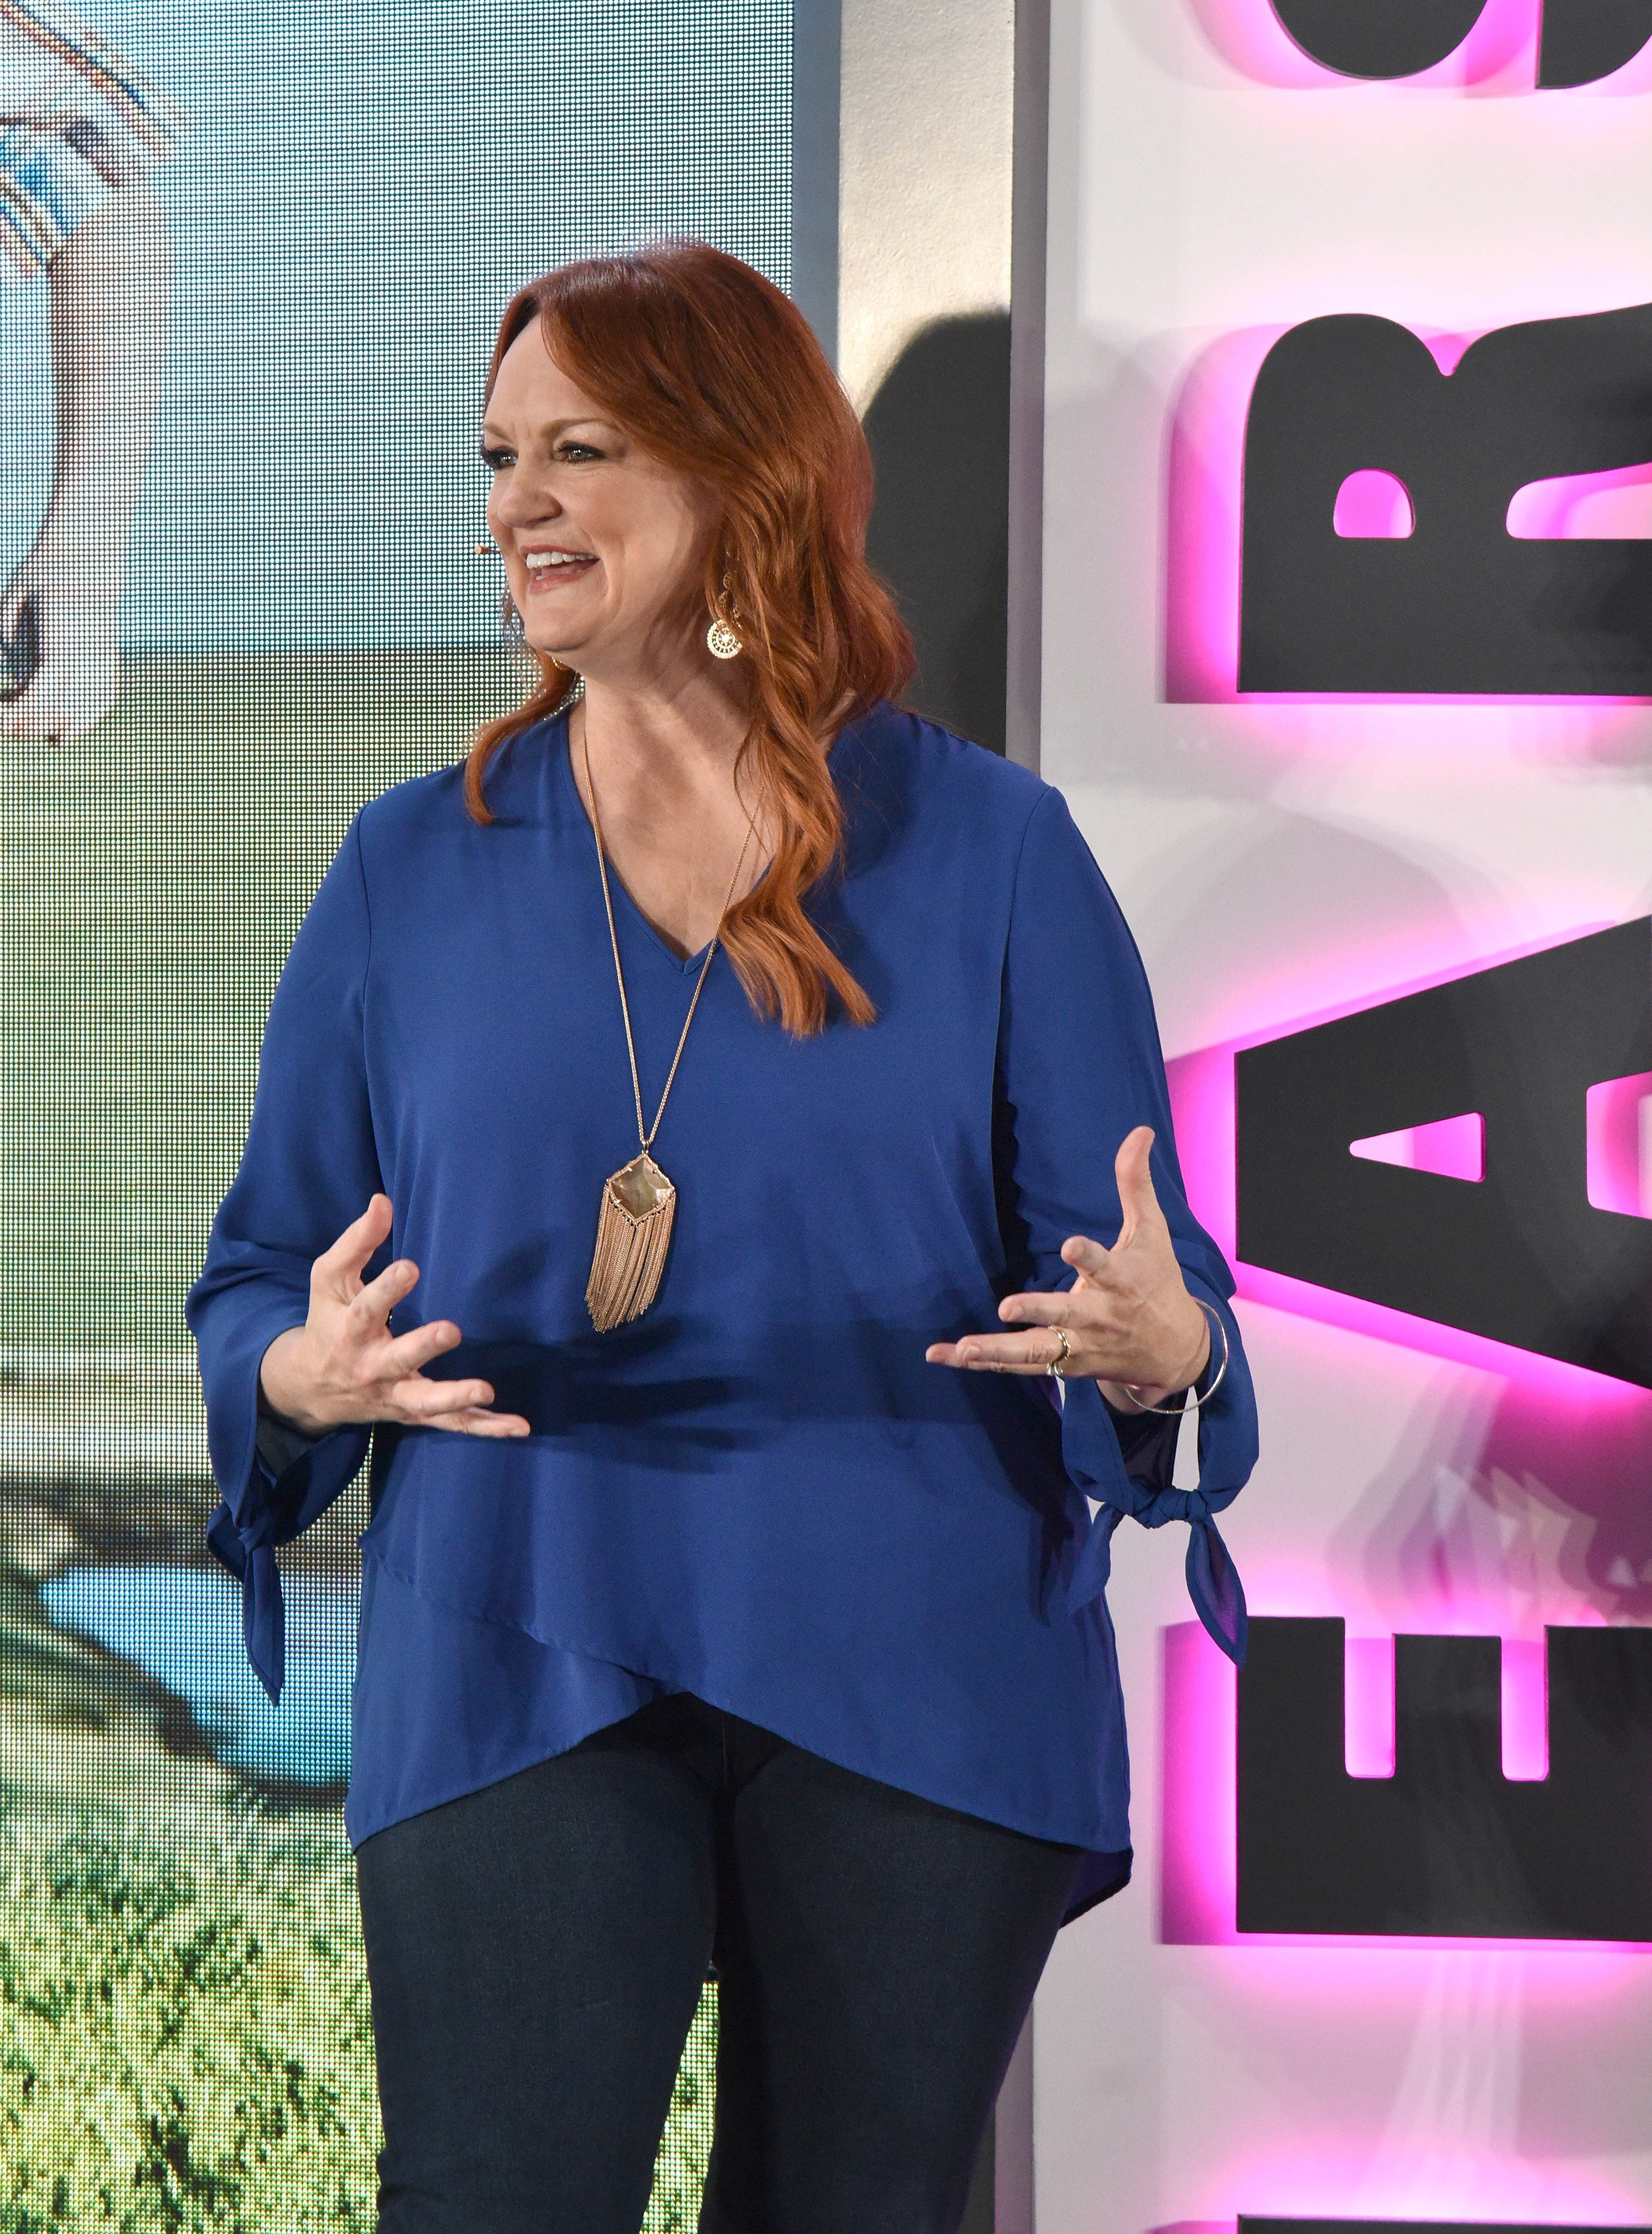 Ree Drummond speaks onstage at Hearst Magazines' Unbound Access MagFront at Hearst Tower on October 17, 2017 in New York City.   Source: Getty Images